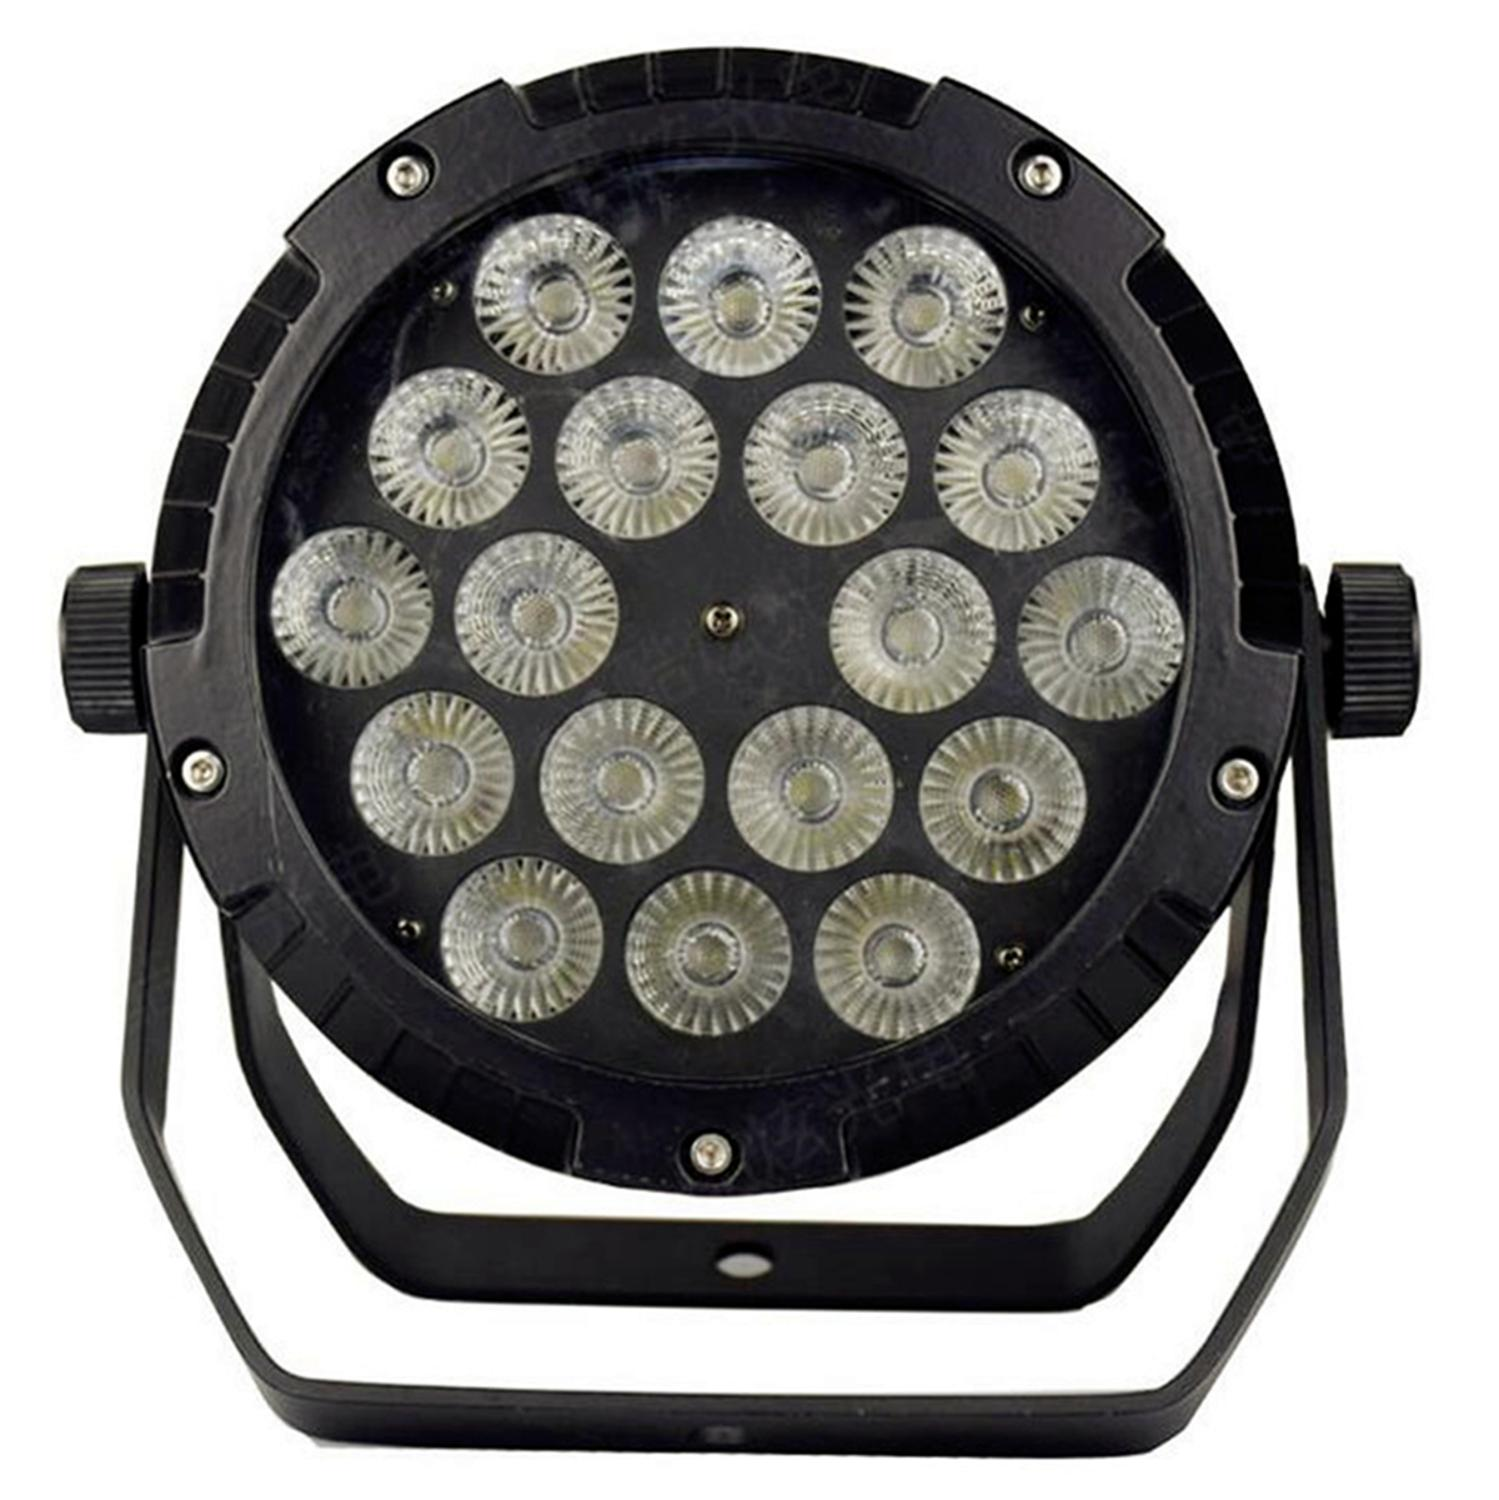 18x18W RGBWA UV 6IN1 18X12W IP65 wasserdichte <font><b>led</b></font> <font><b>Par</b></font> Lichter, RGBW 4in1 <font><b>LED</b></font> <font><b>PAR</b></font> DMX control bühne DJ equipment disco lichter image